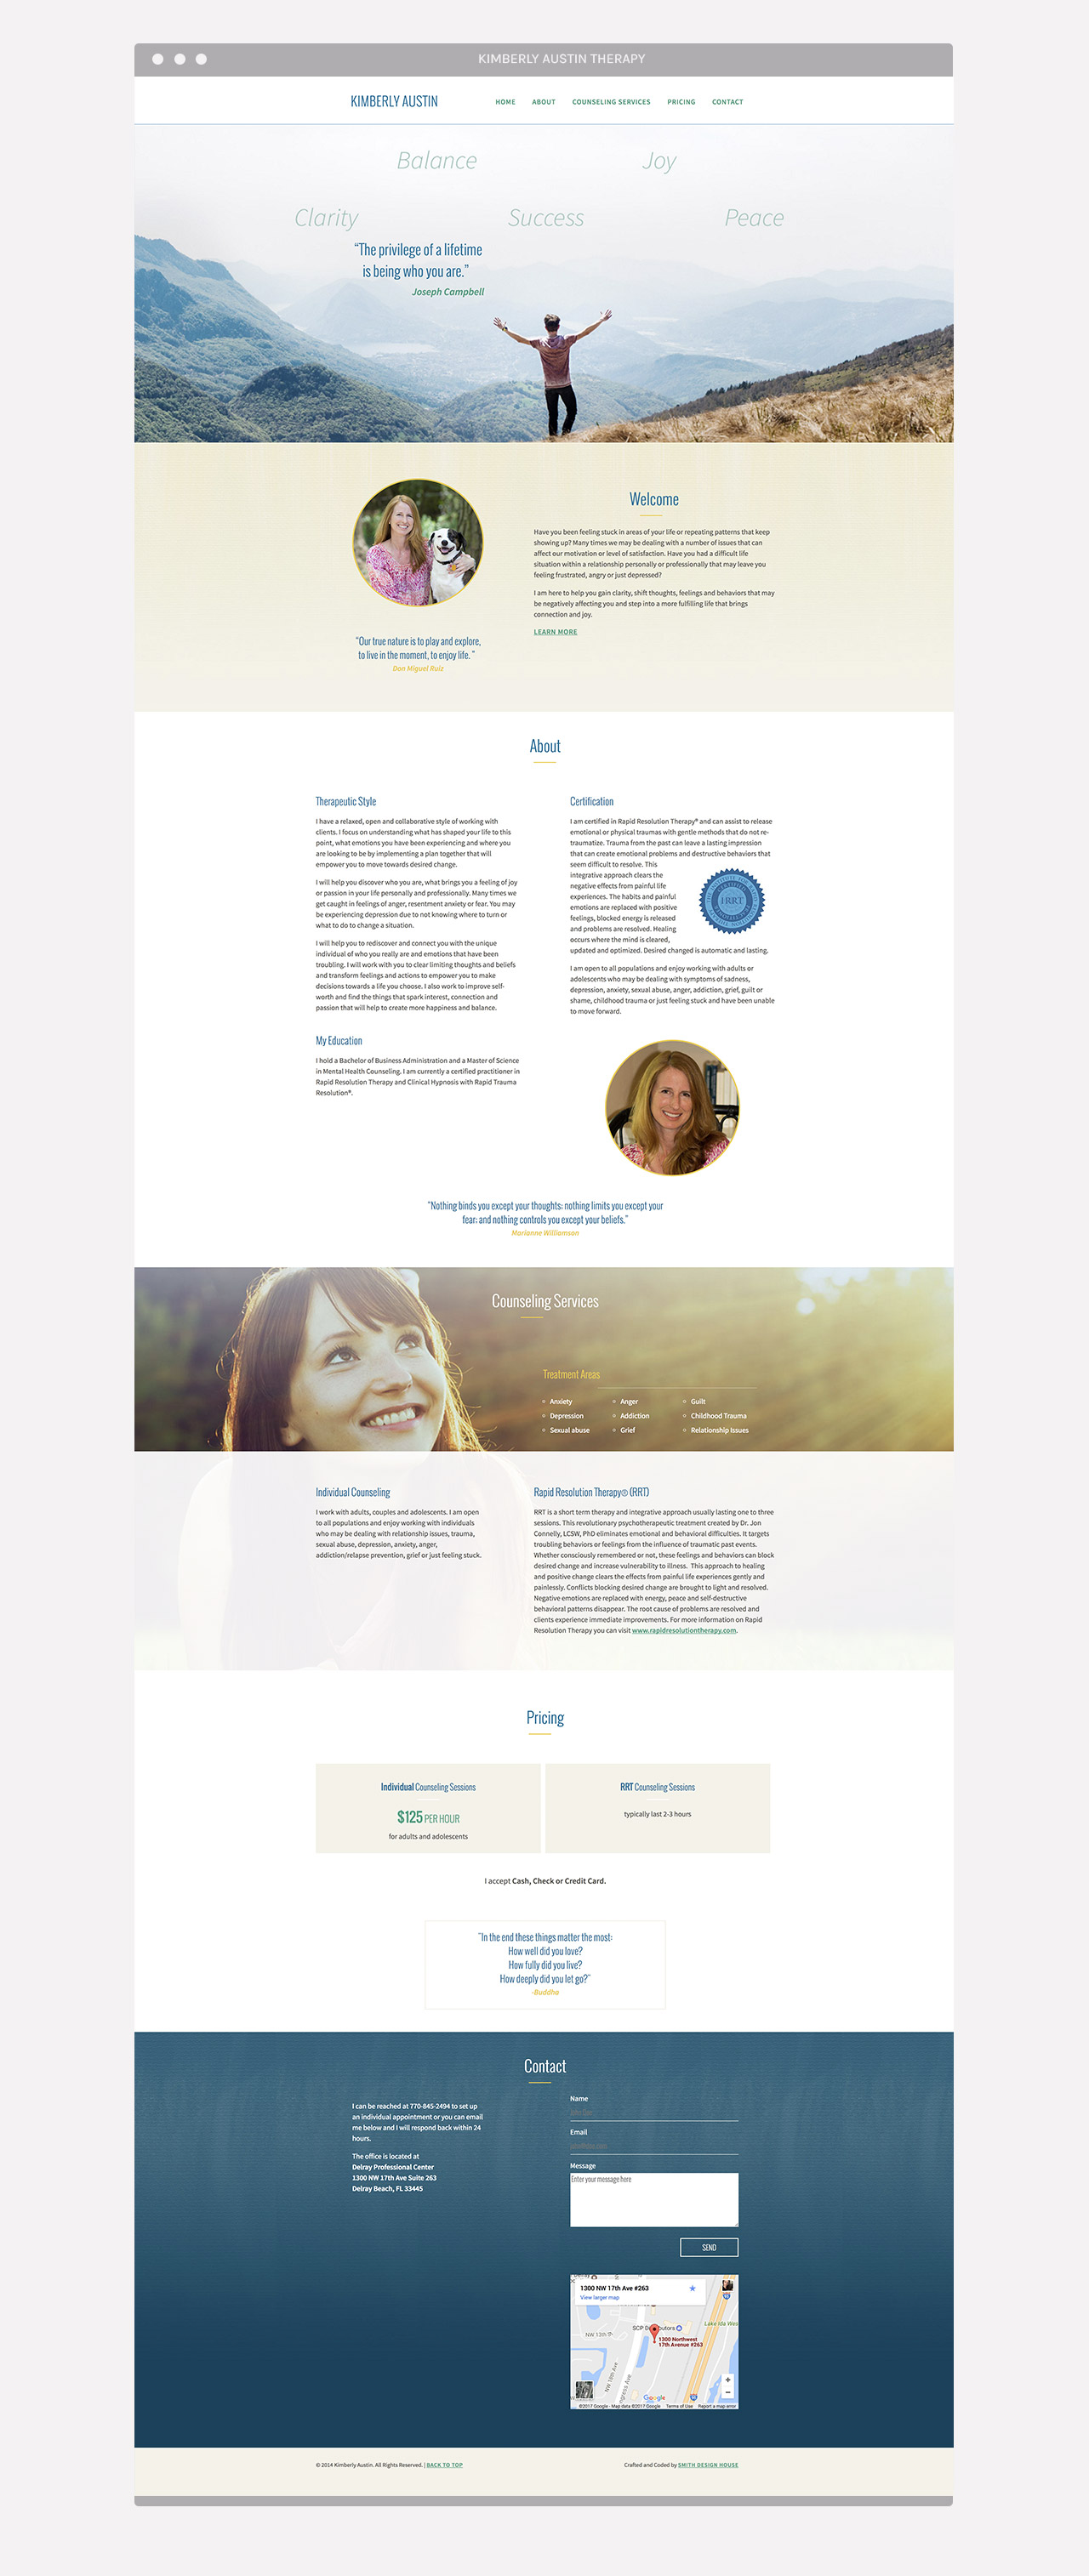 Kimberly Austin Therapy Web design